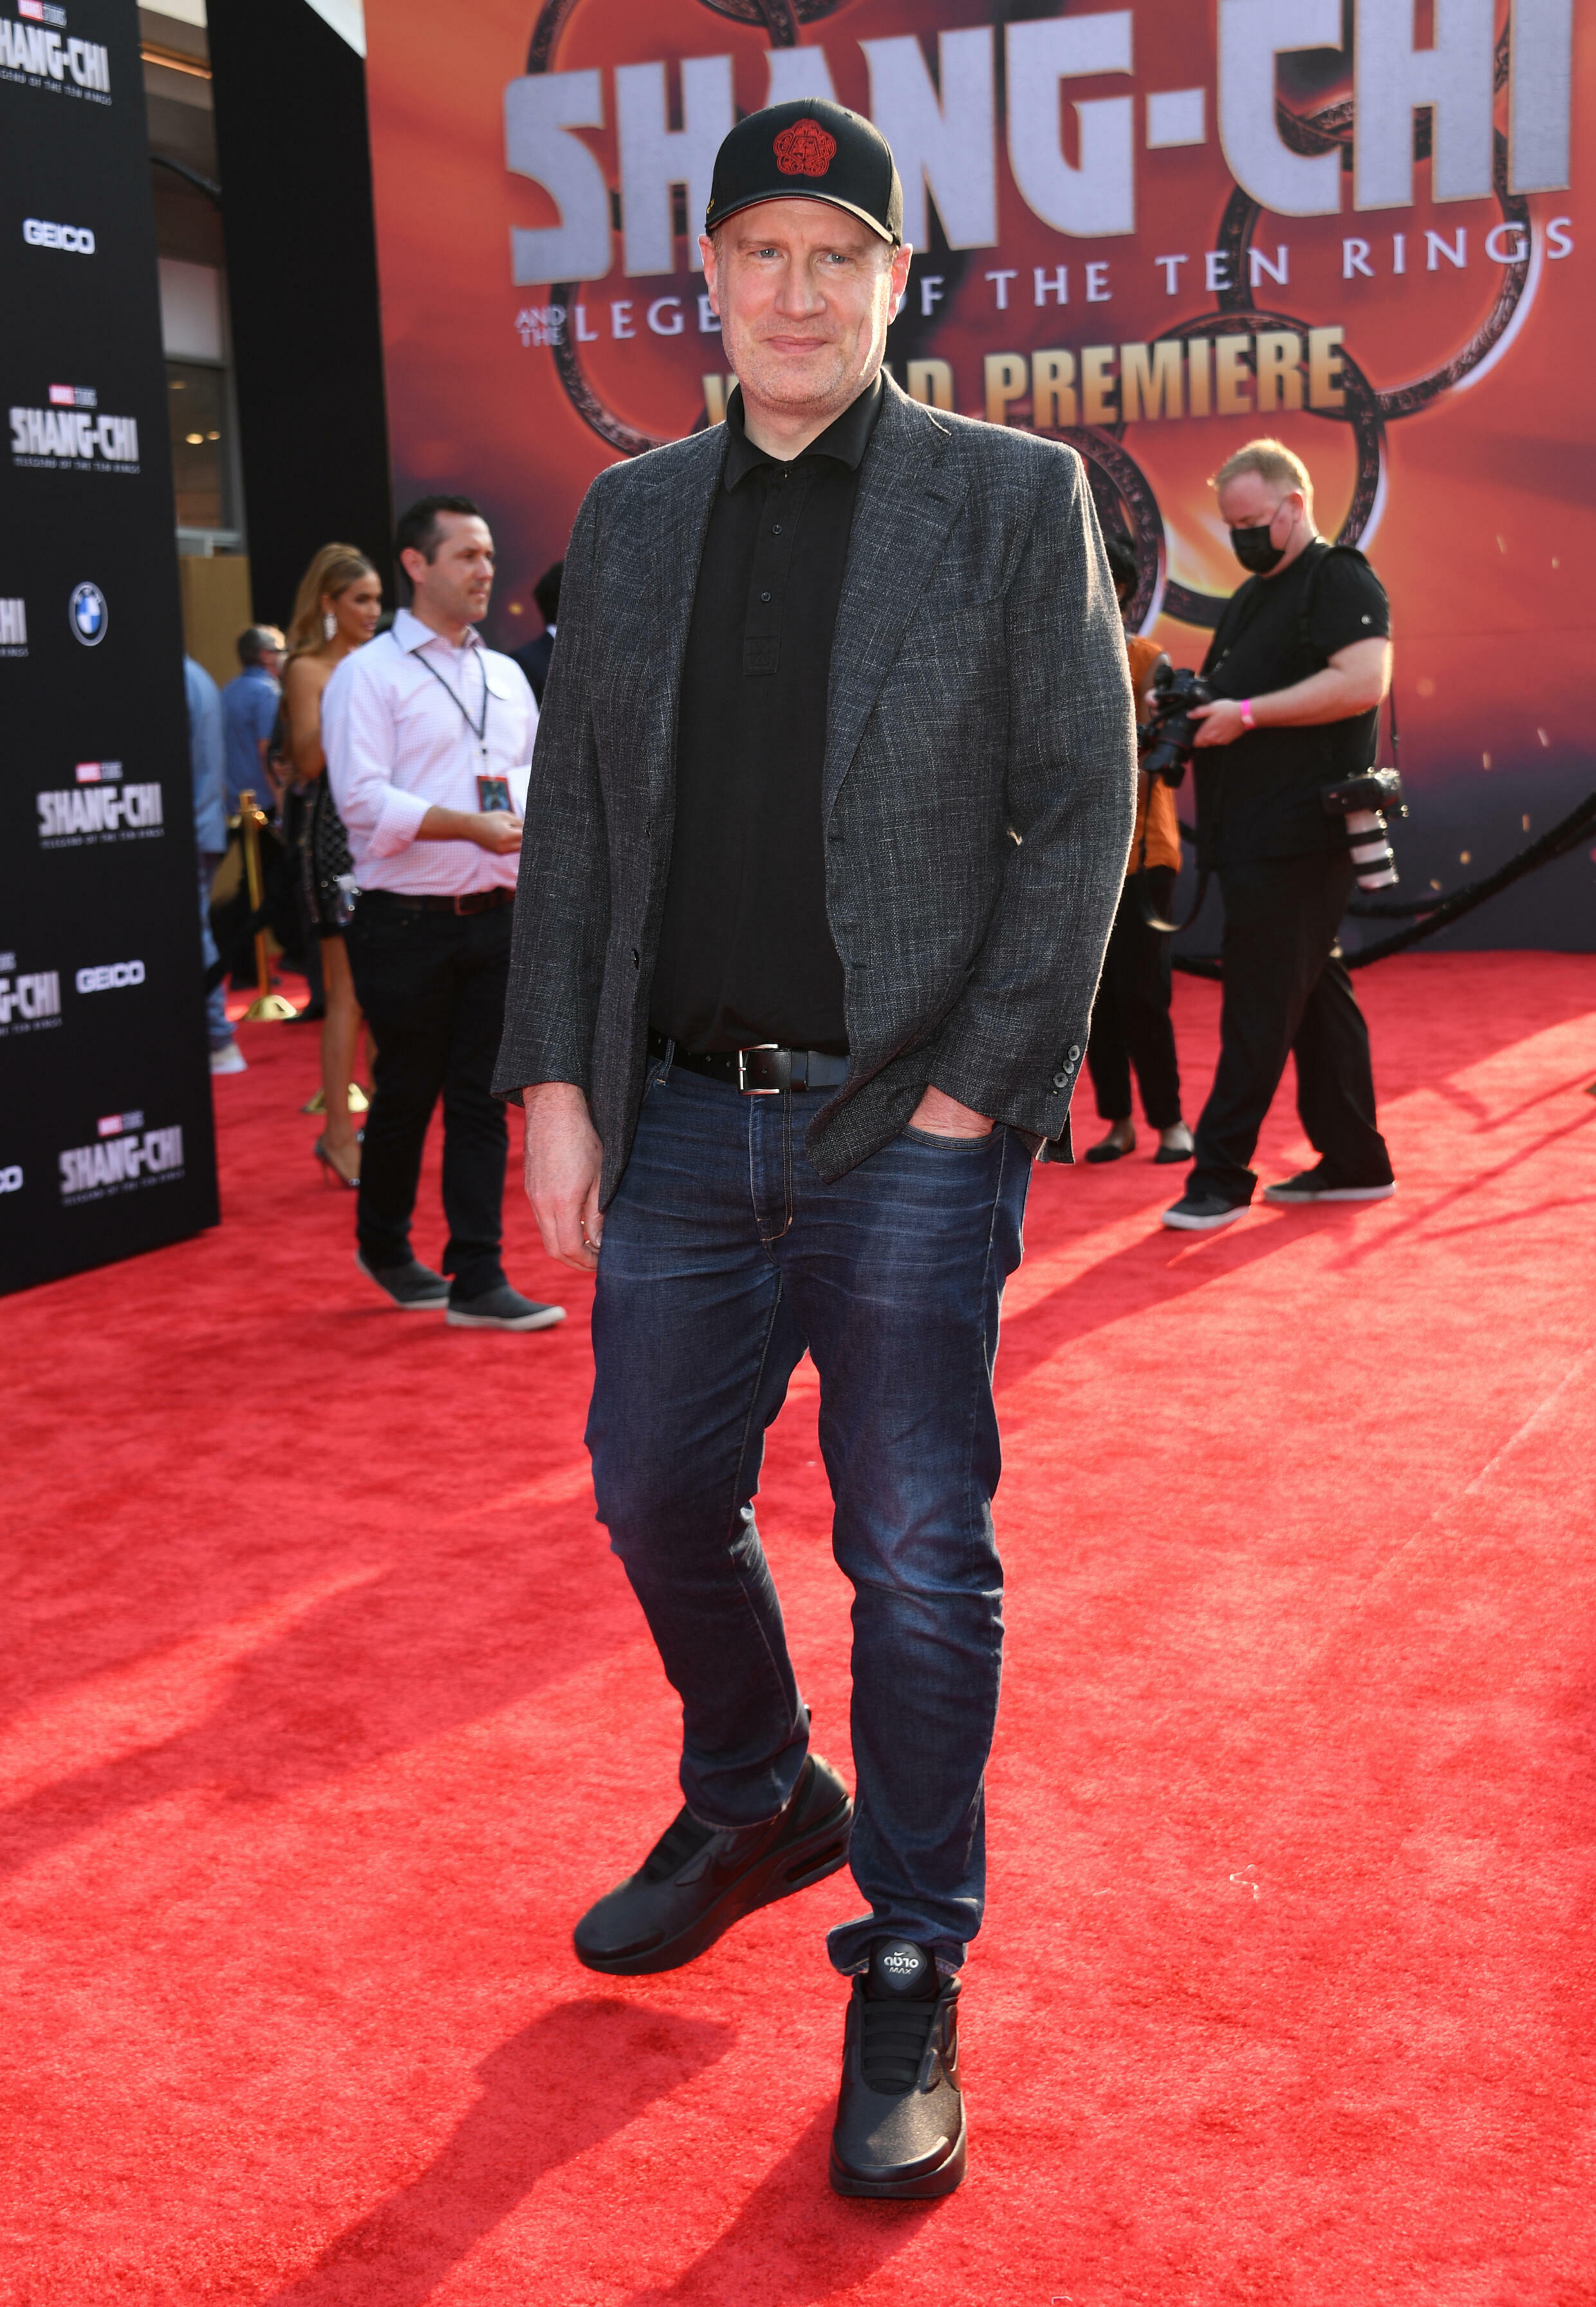 Marvel Studios president Kevin Feige has sought to push back against criticism that the film conforms to Western stereotypes of China